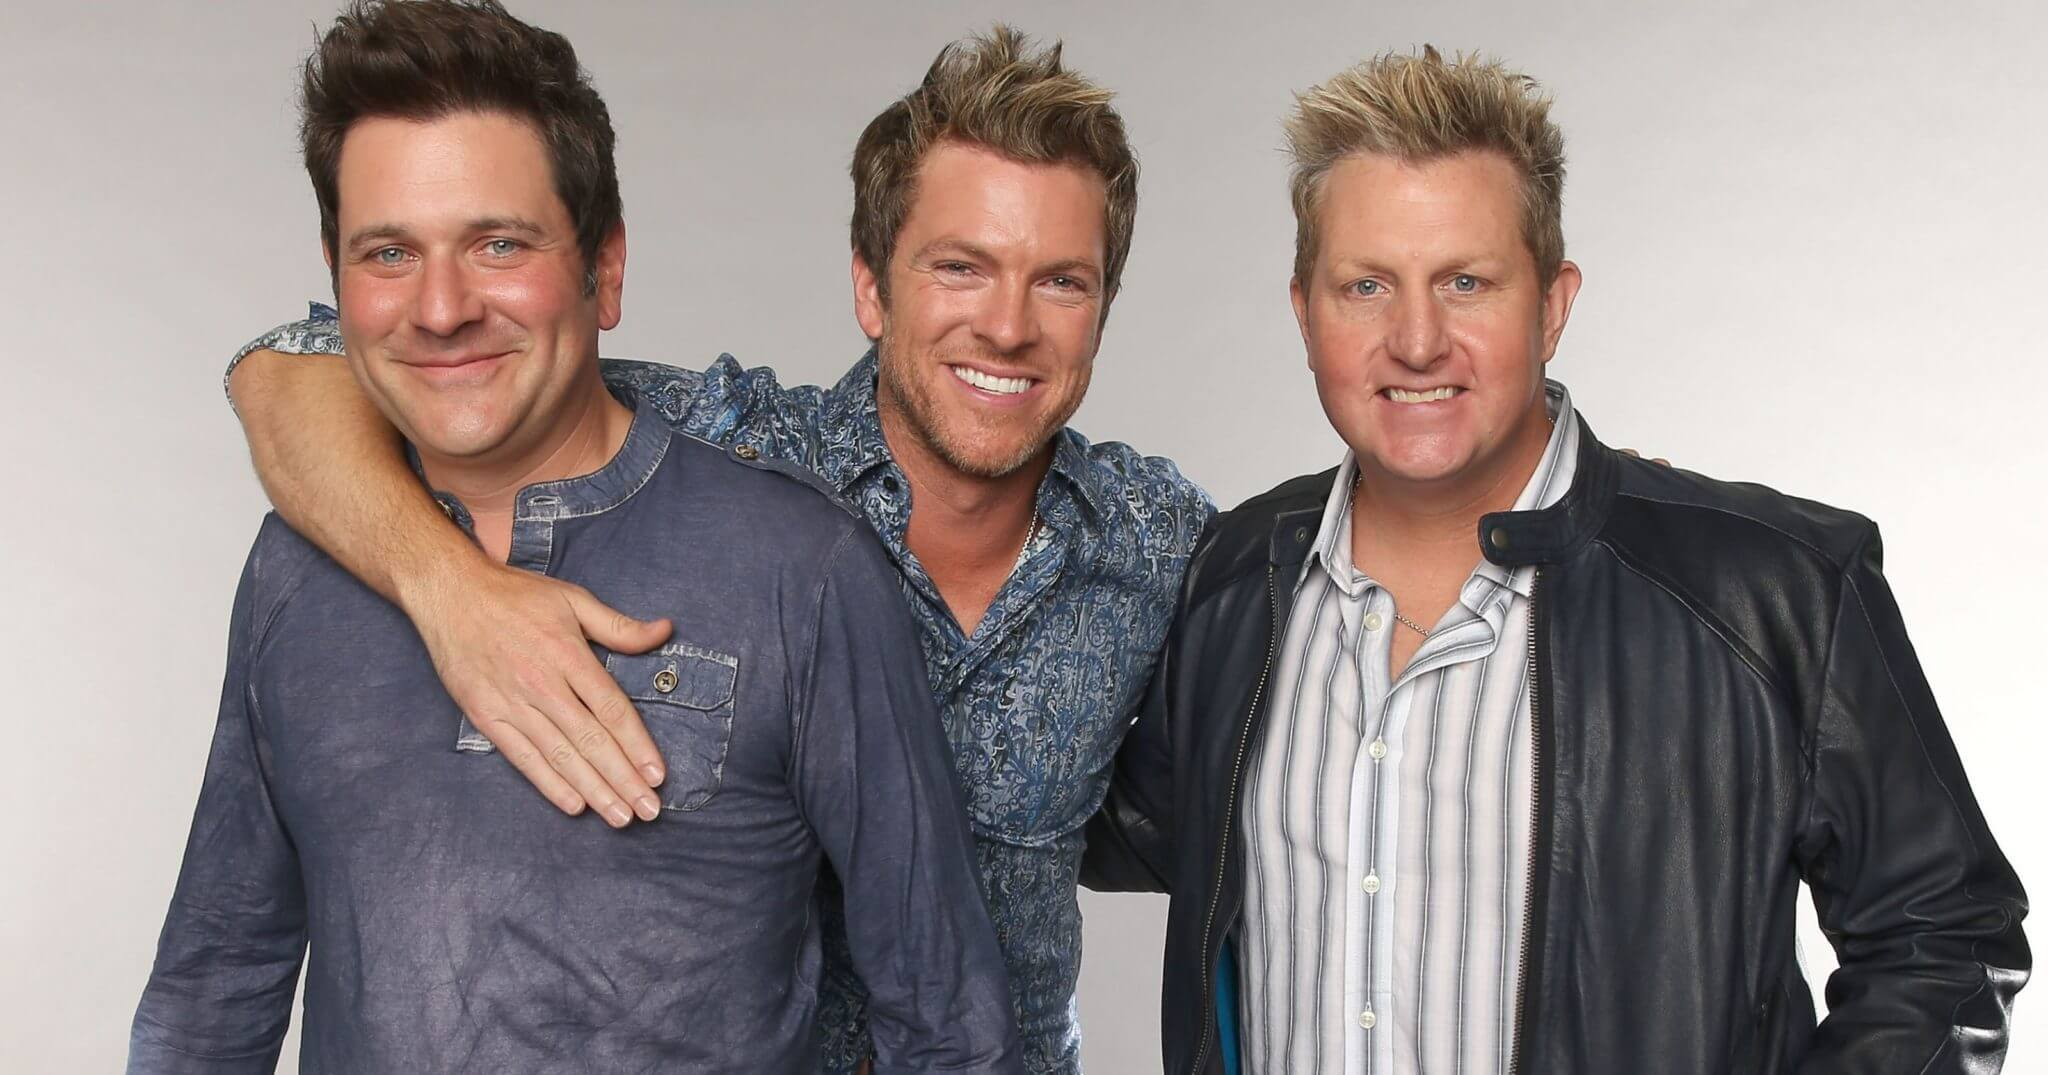 Rascal flatts tour dates in Melbourne